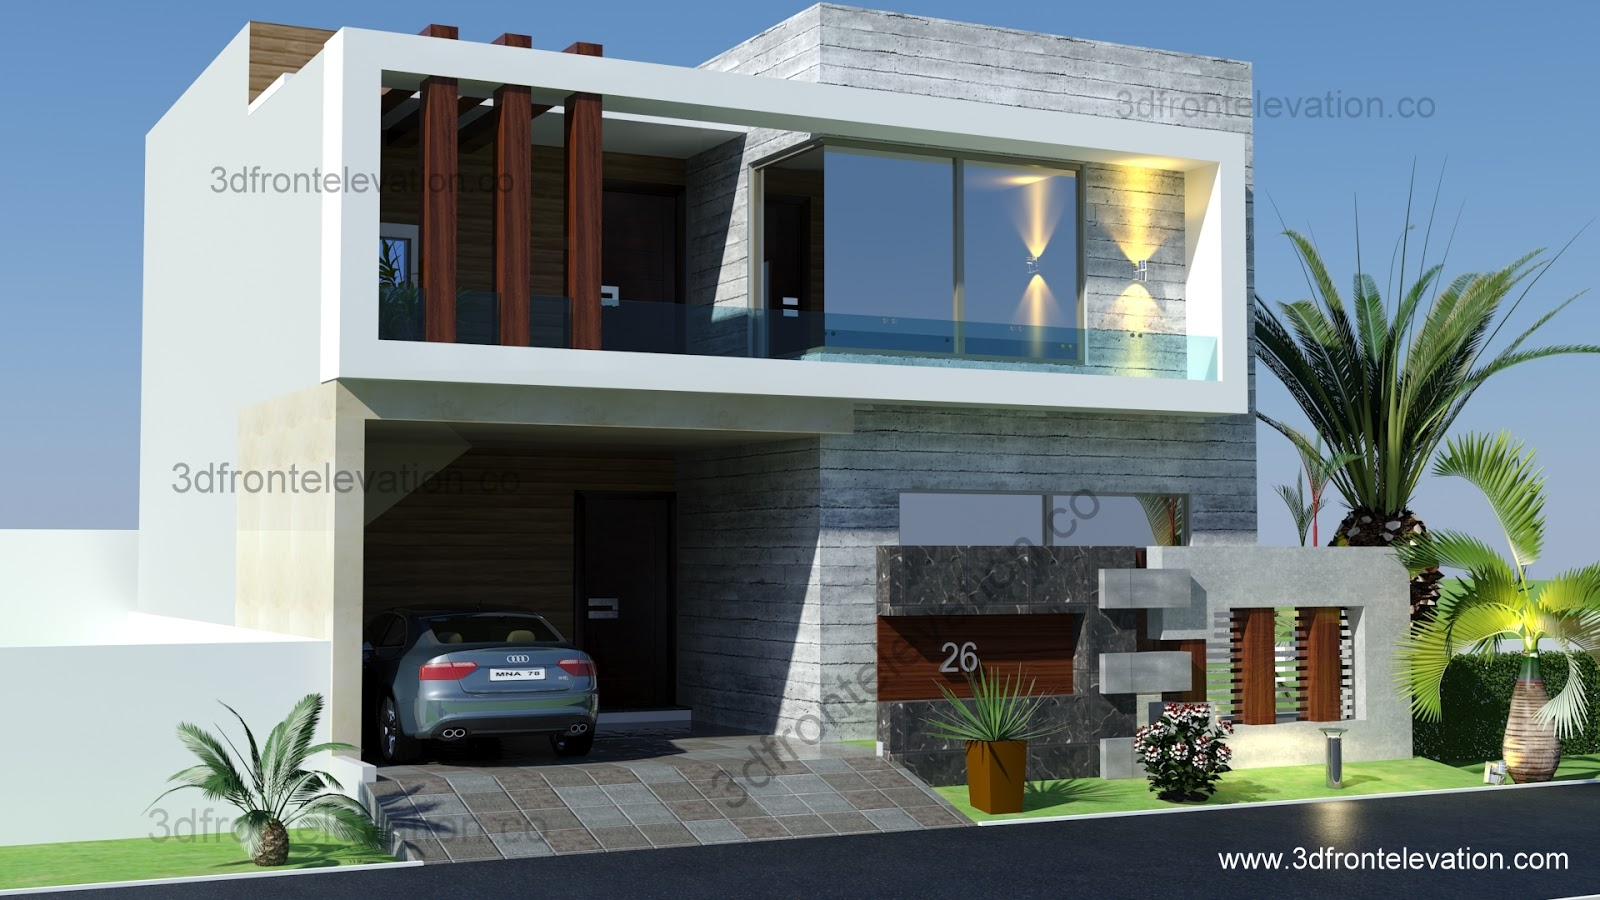 D Front Elevation Of Marla Houses : D front elevation marla house plan